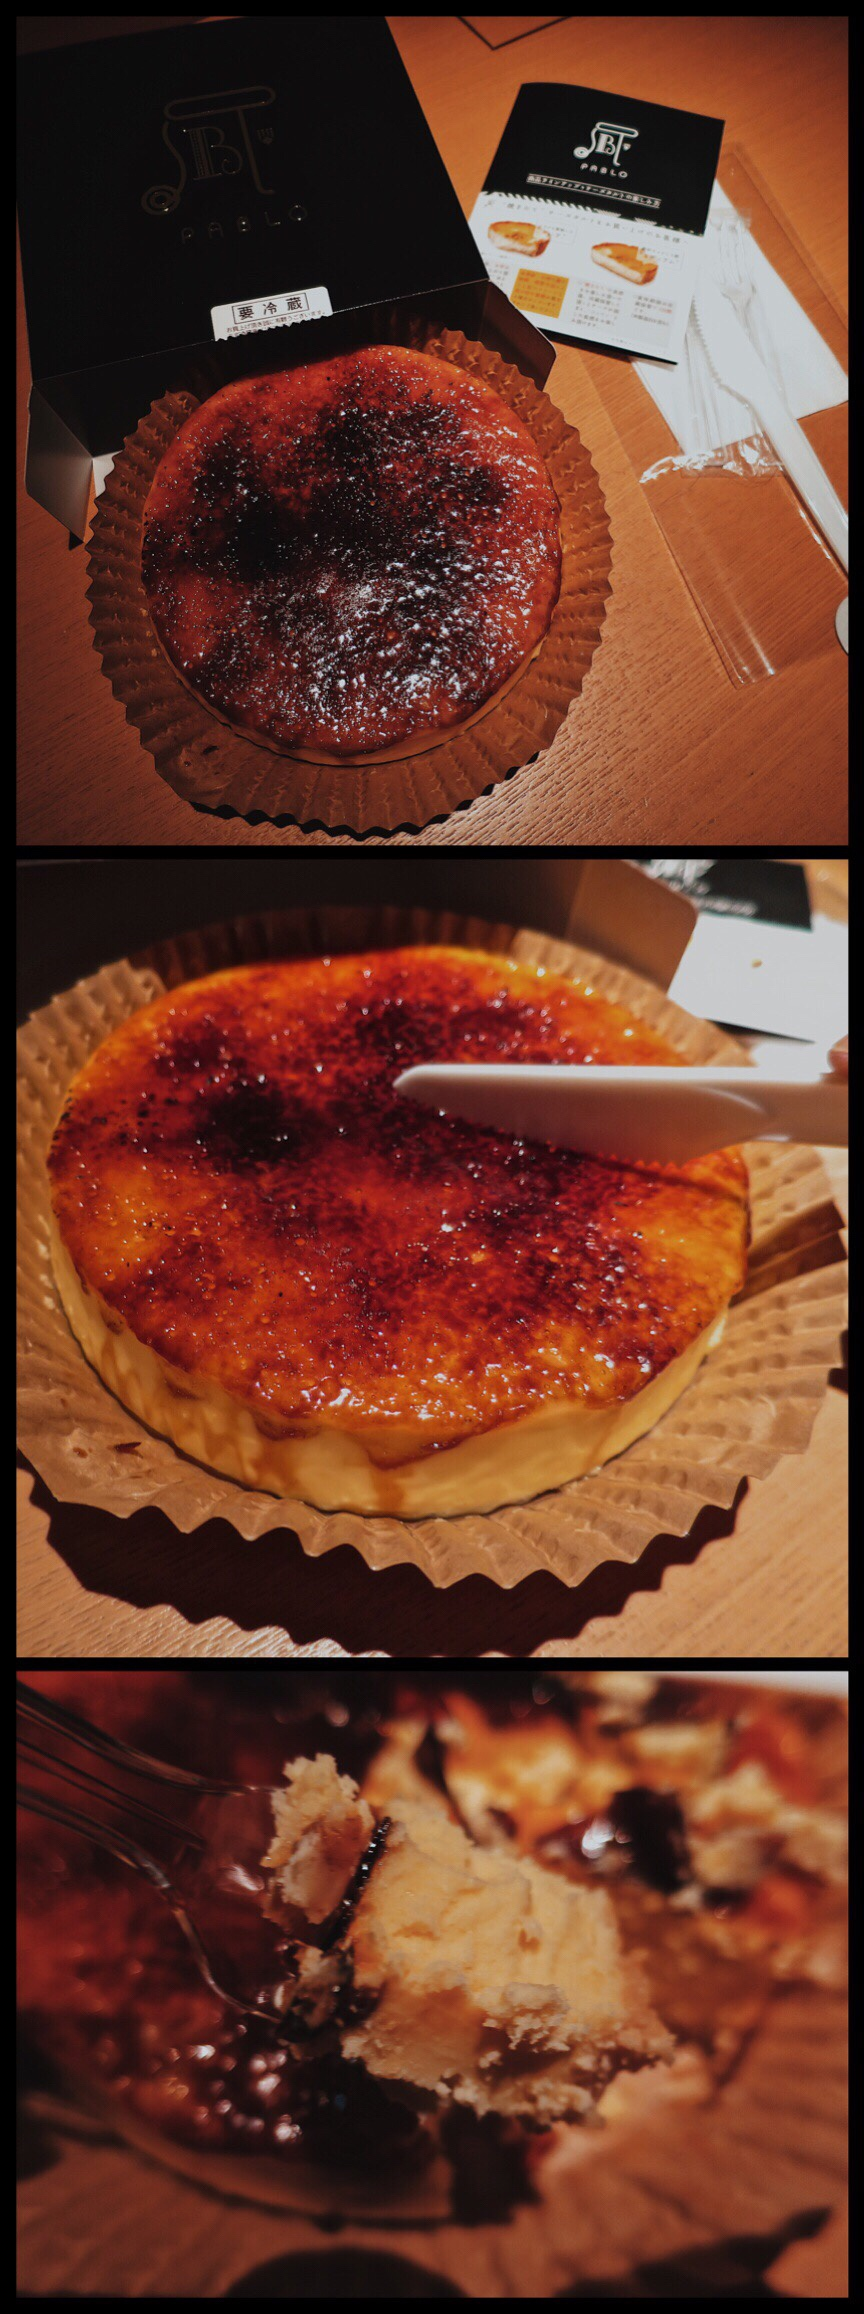 Pablo Cheesecake Osaka Travel Guide